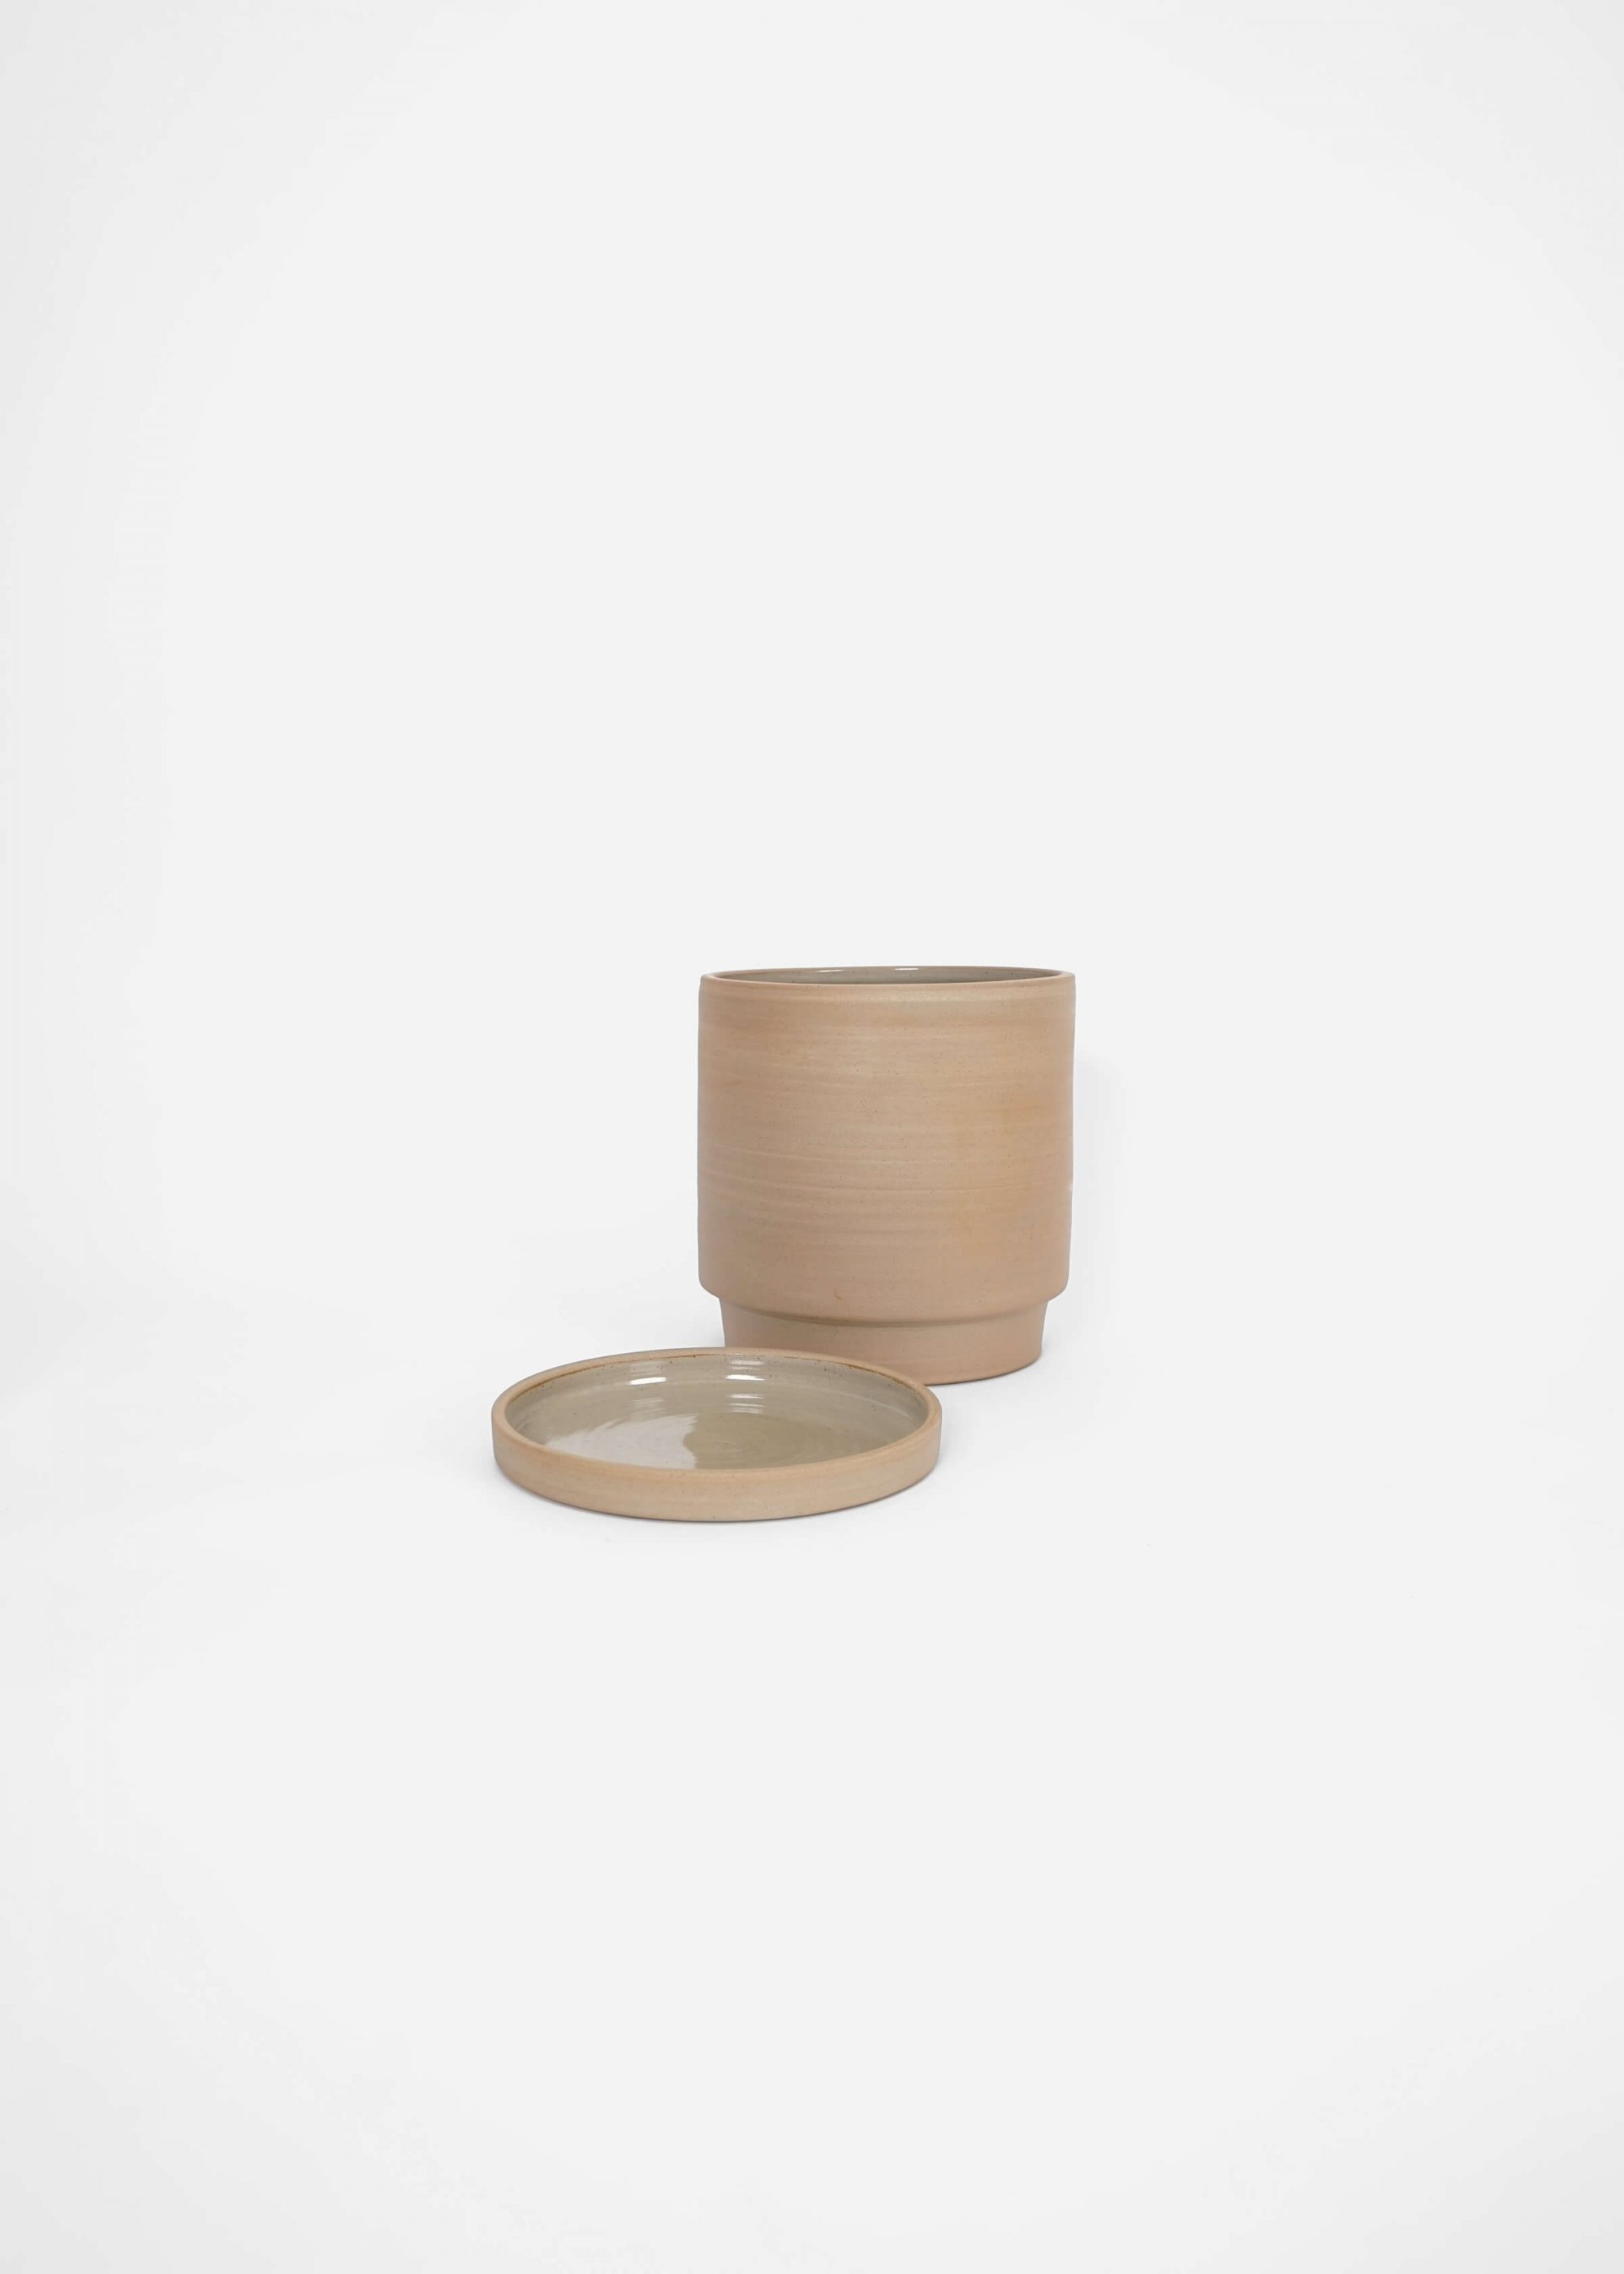 Product image for N° ICSD1 BRUTAL Planter Raw Large